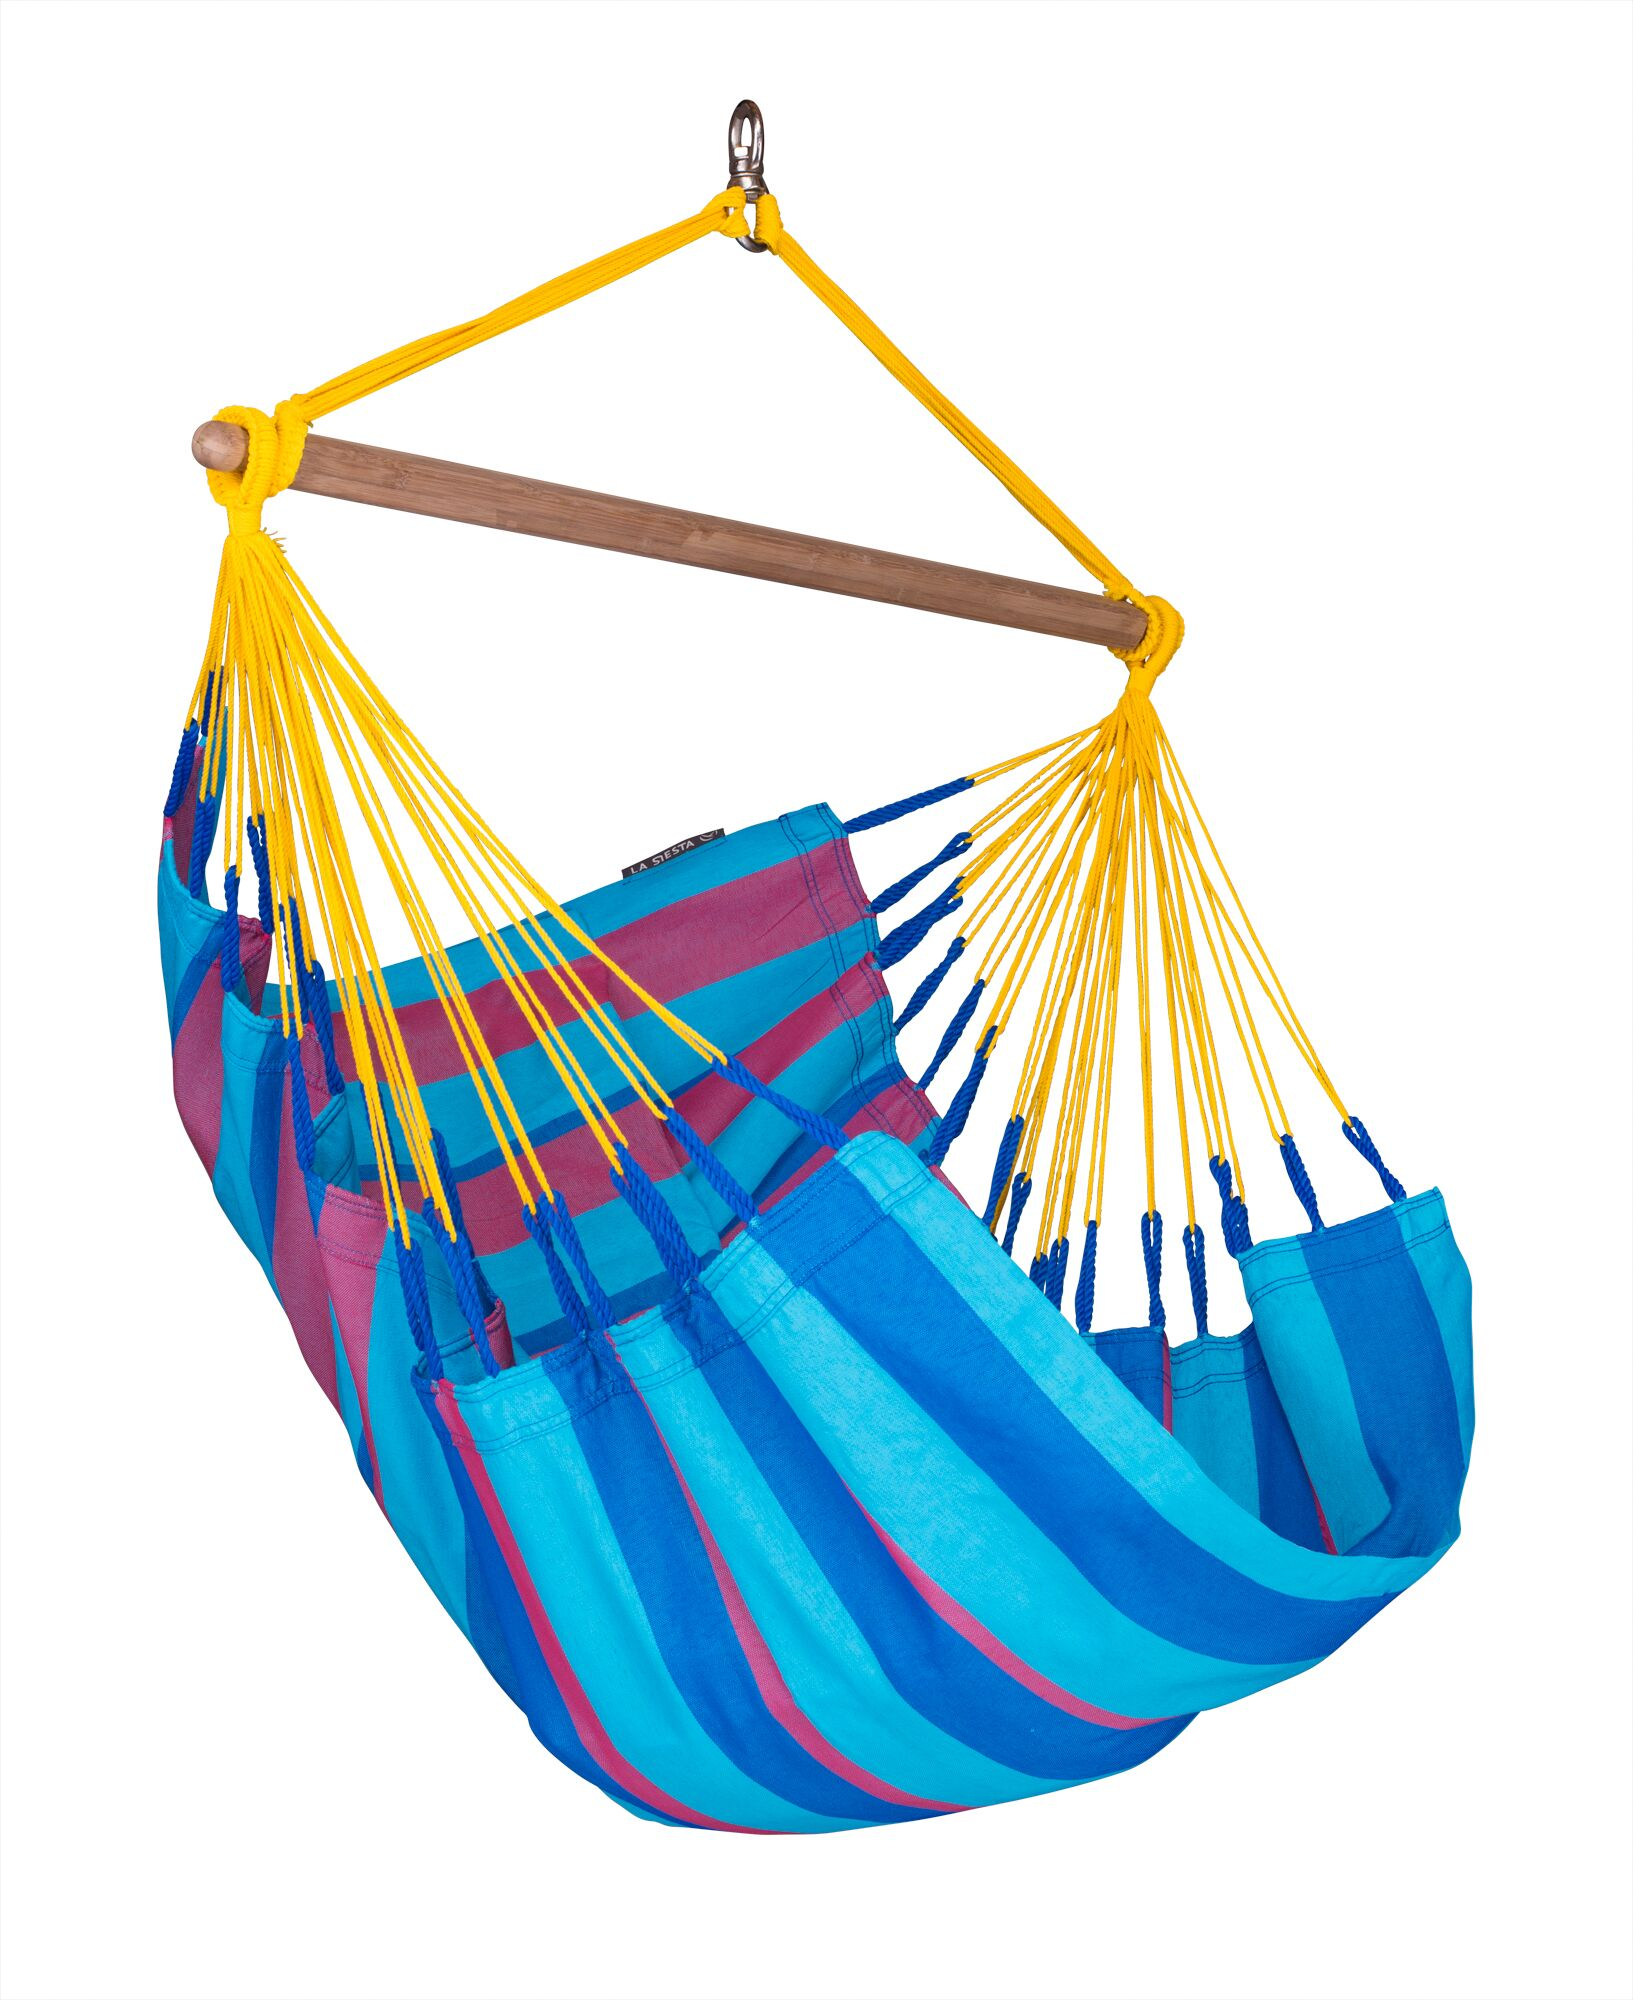 SONRISA Weatherproof Basic Olefin Chair Hammock Color: Wild berry